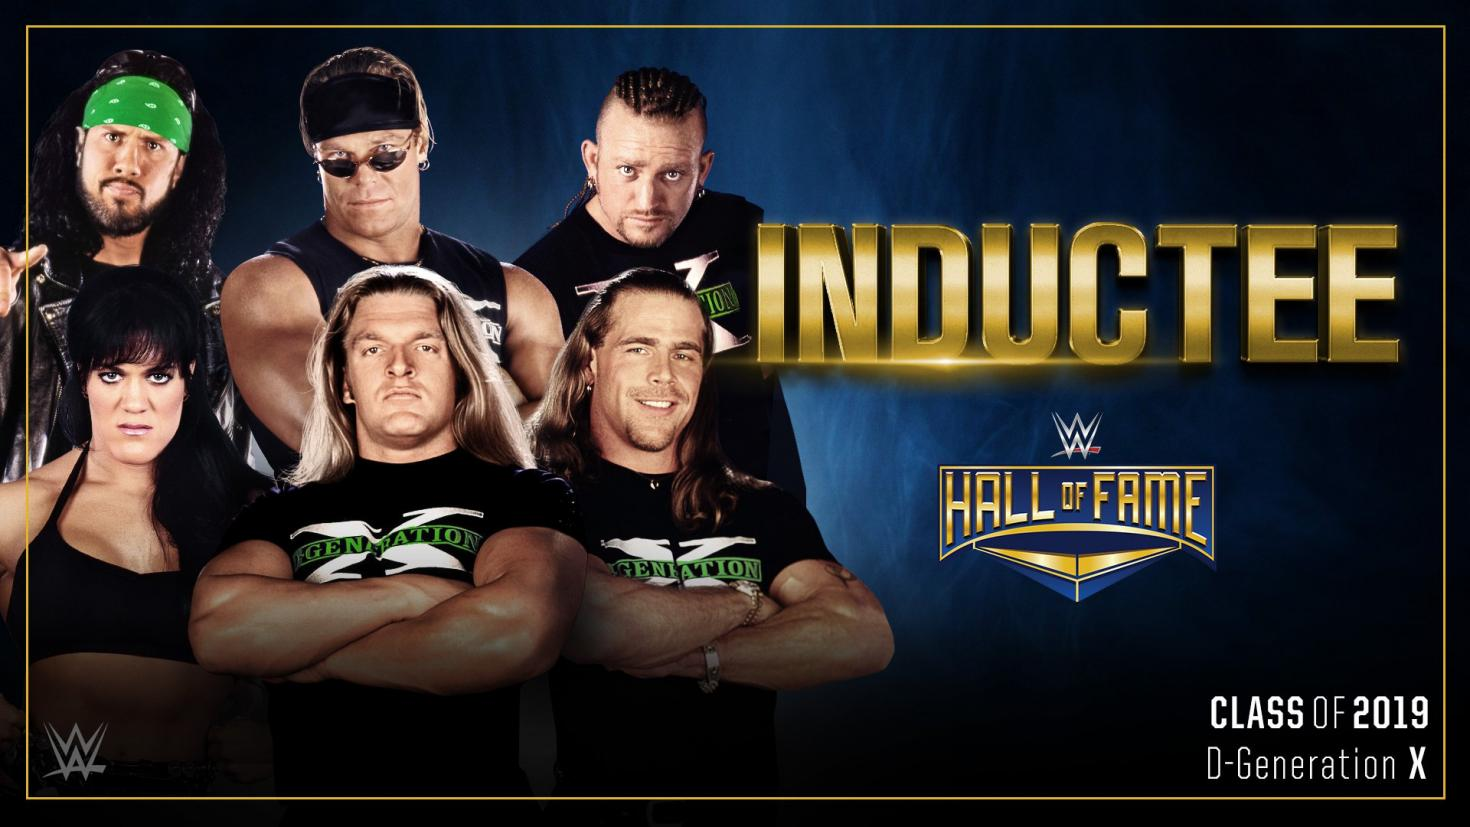 WWE announce legends D-Generation X for 2019 Hall of Fame